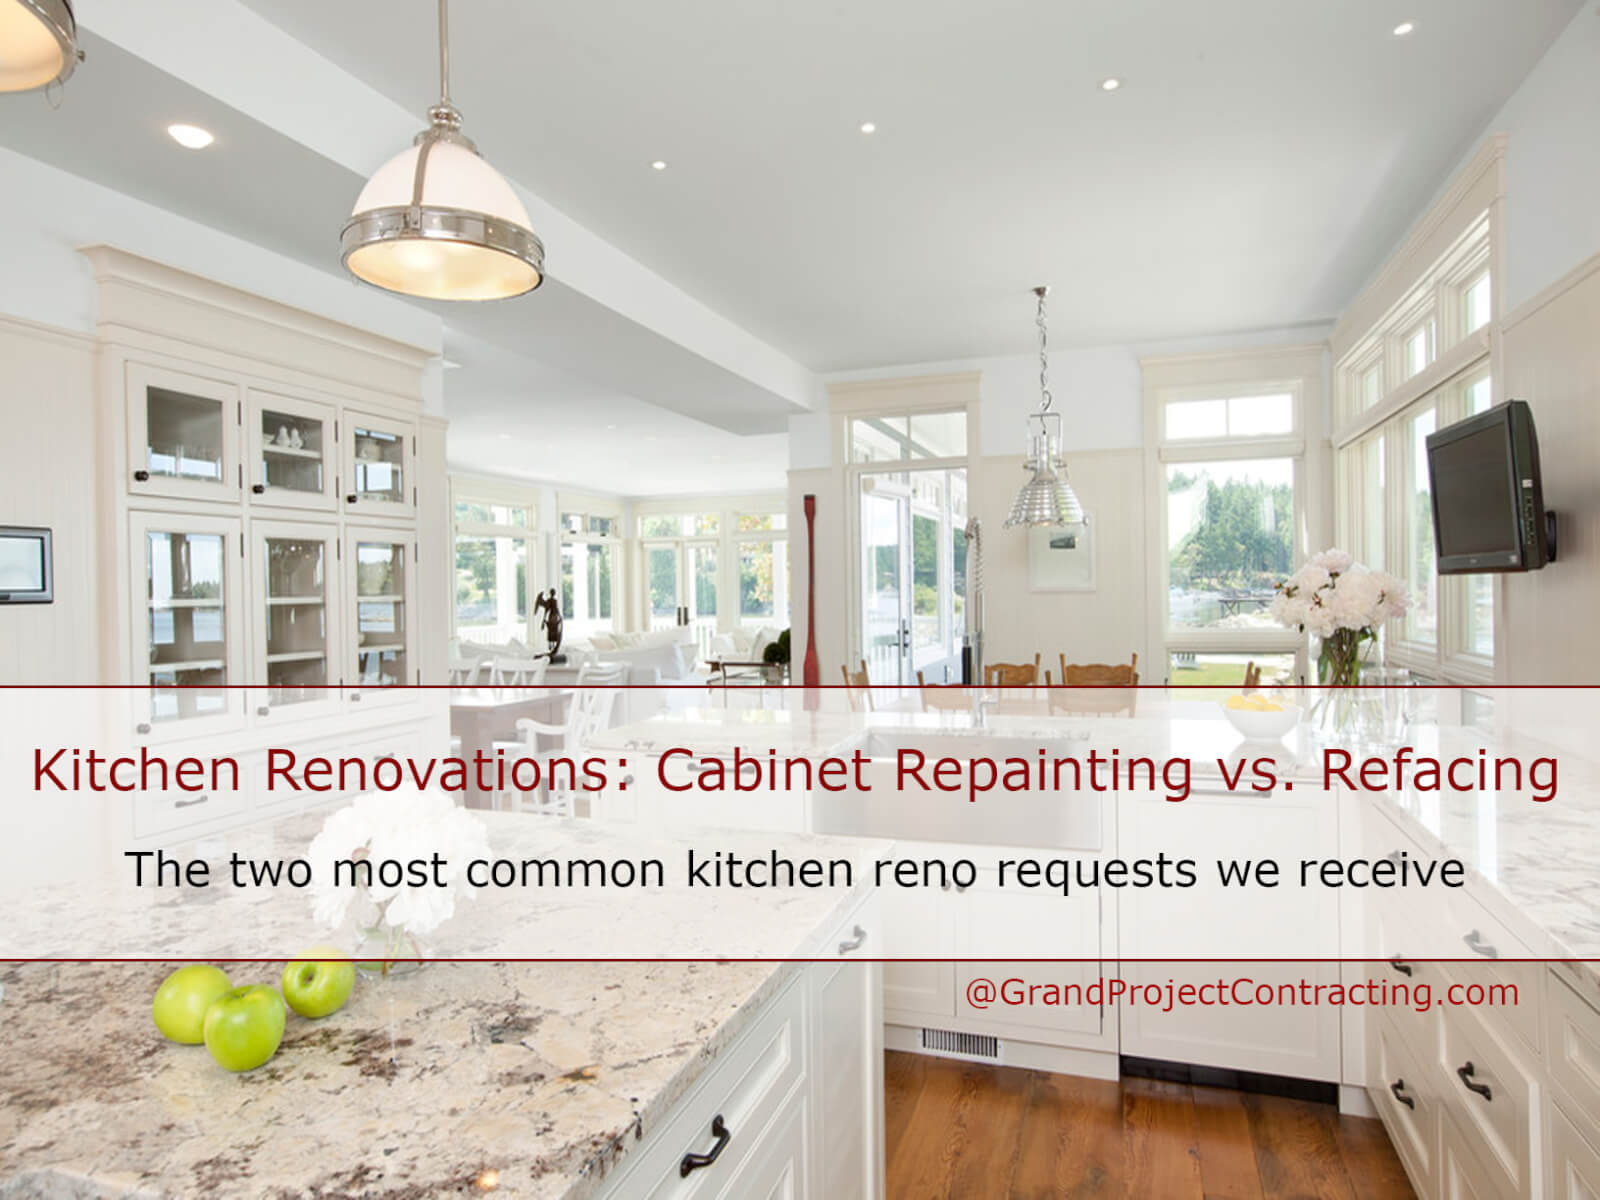 Kitchen Cabinet Painting vs refacing